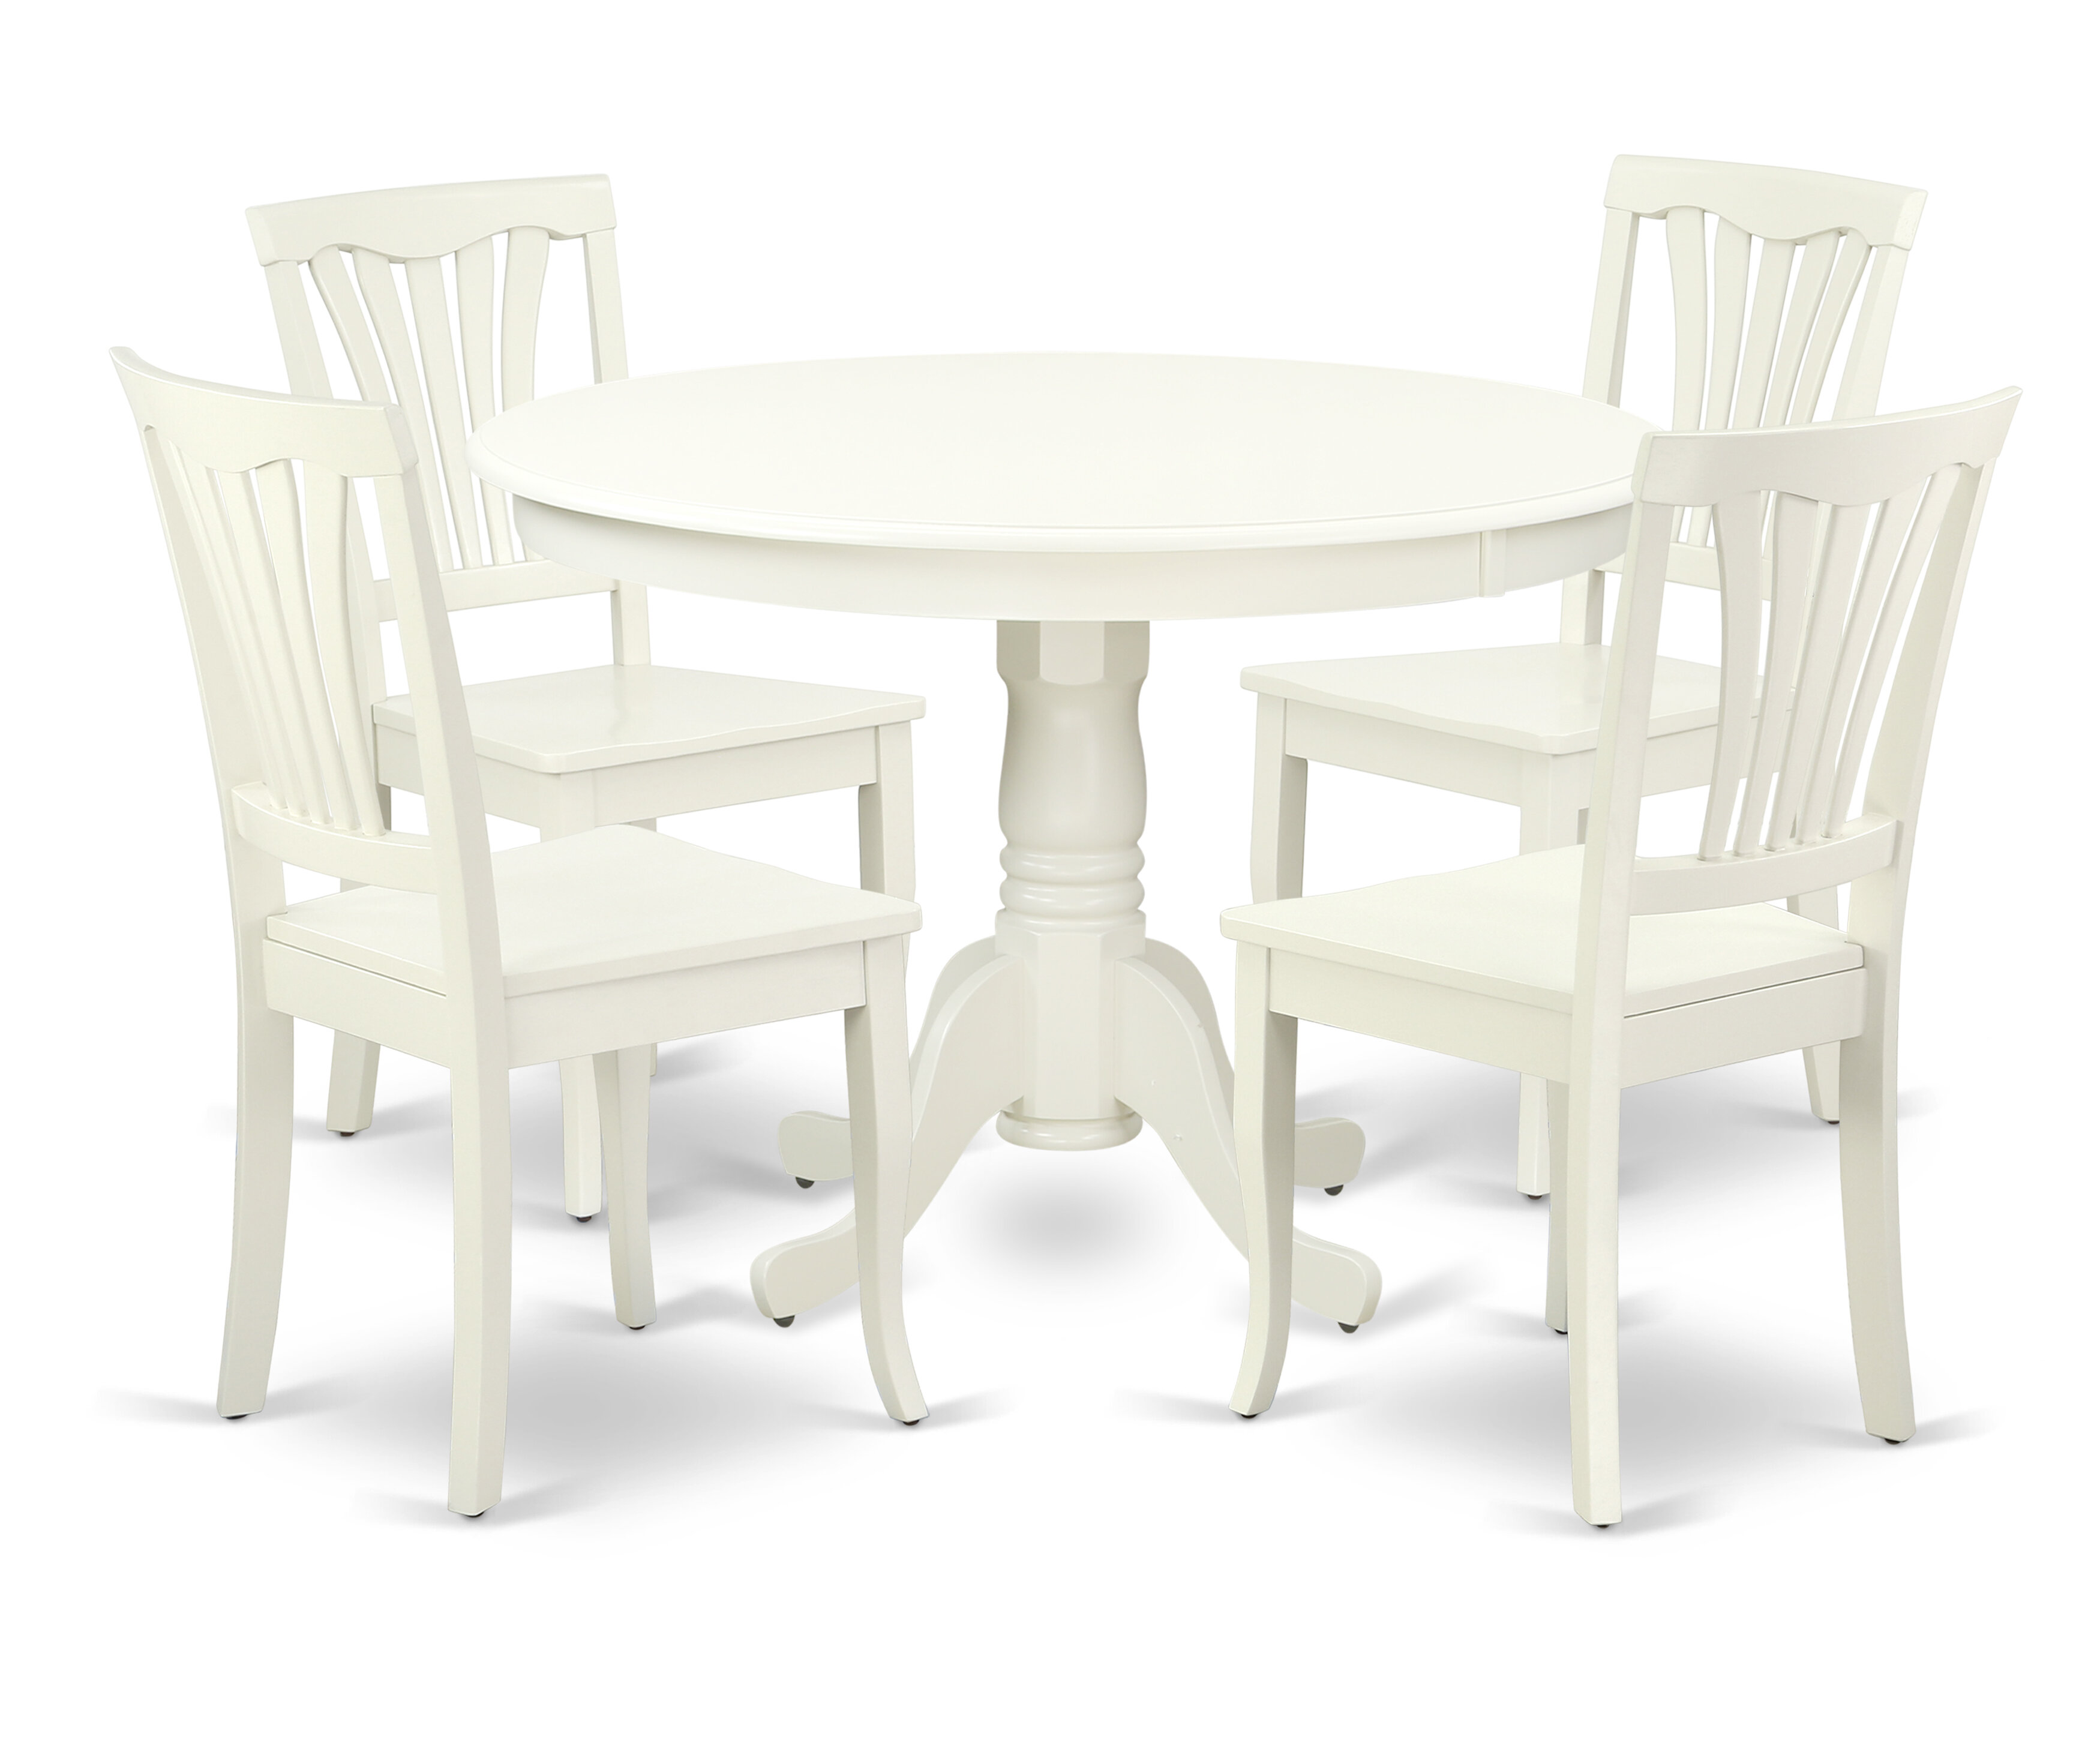 Breakfast Nook August Grove Kitchen Dining Room Sets You Ll Love In 2021 Wayfair